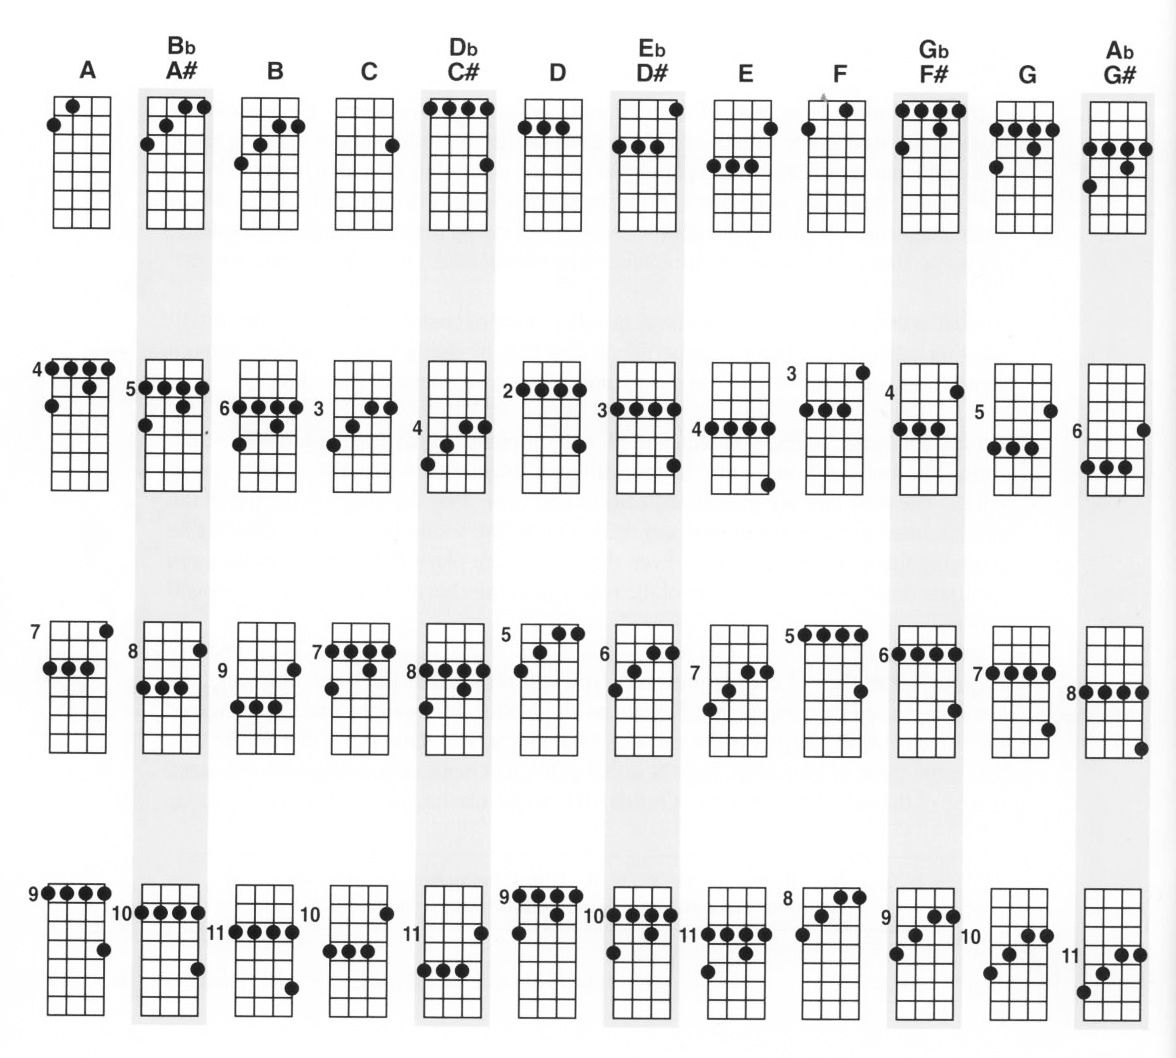 Asus7 guitar chord choice image guitar chords examples asus7 guitar chord gallery guitar chords examples asus7 chord images reverse search partition guitare ukulele fatherlandz hexwebz Image collections